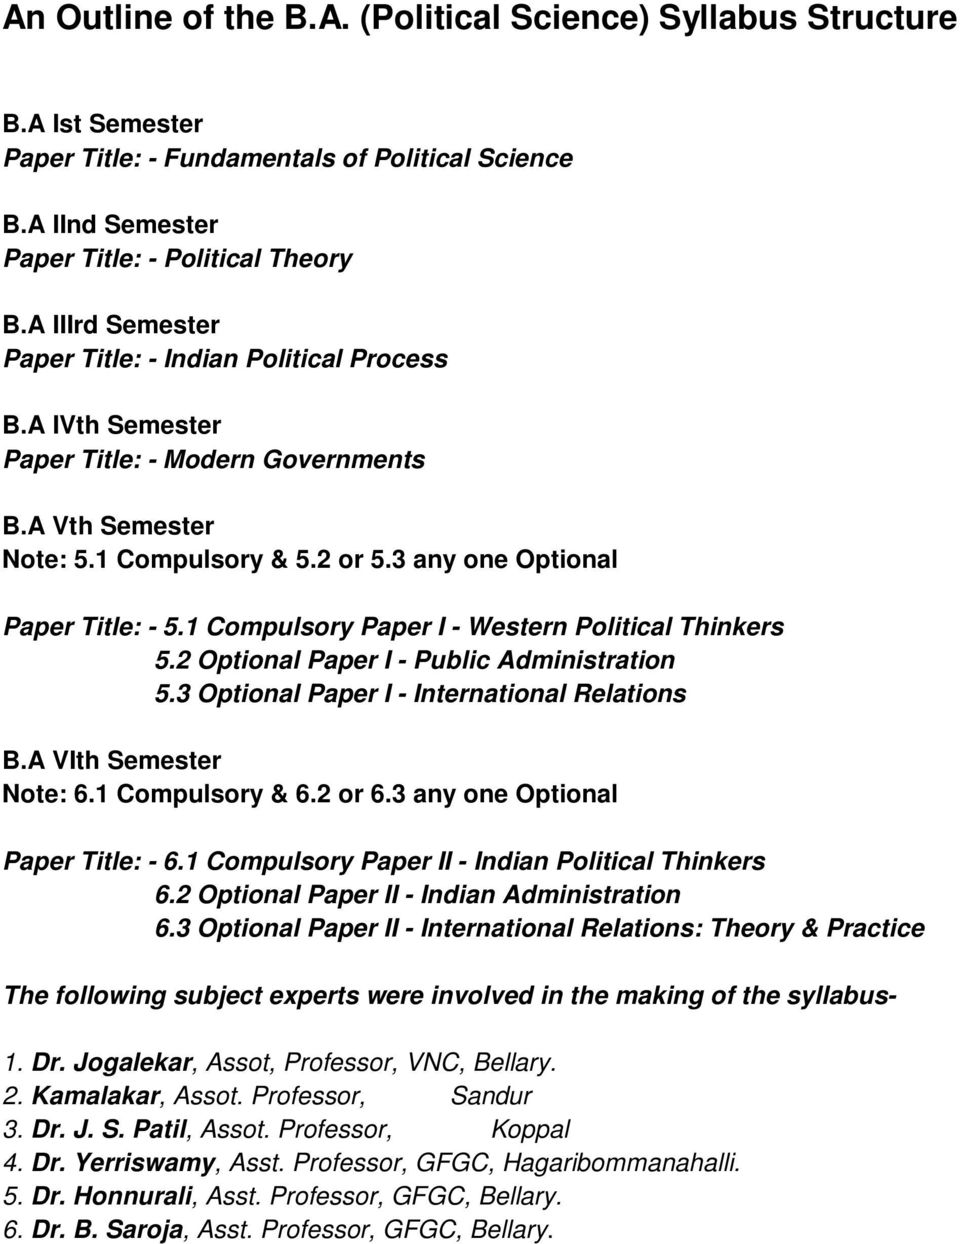 Fundamentals of sociology and political science as modern sciences